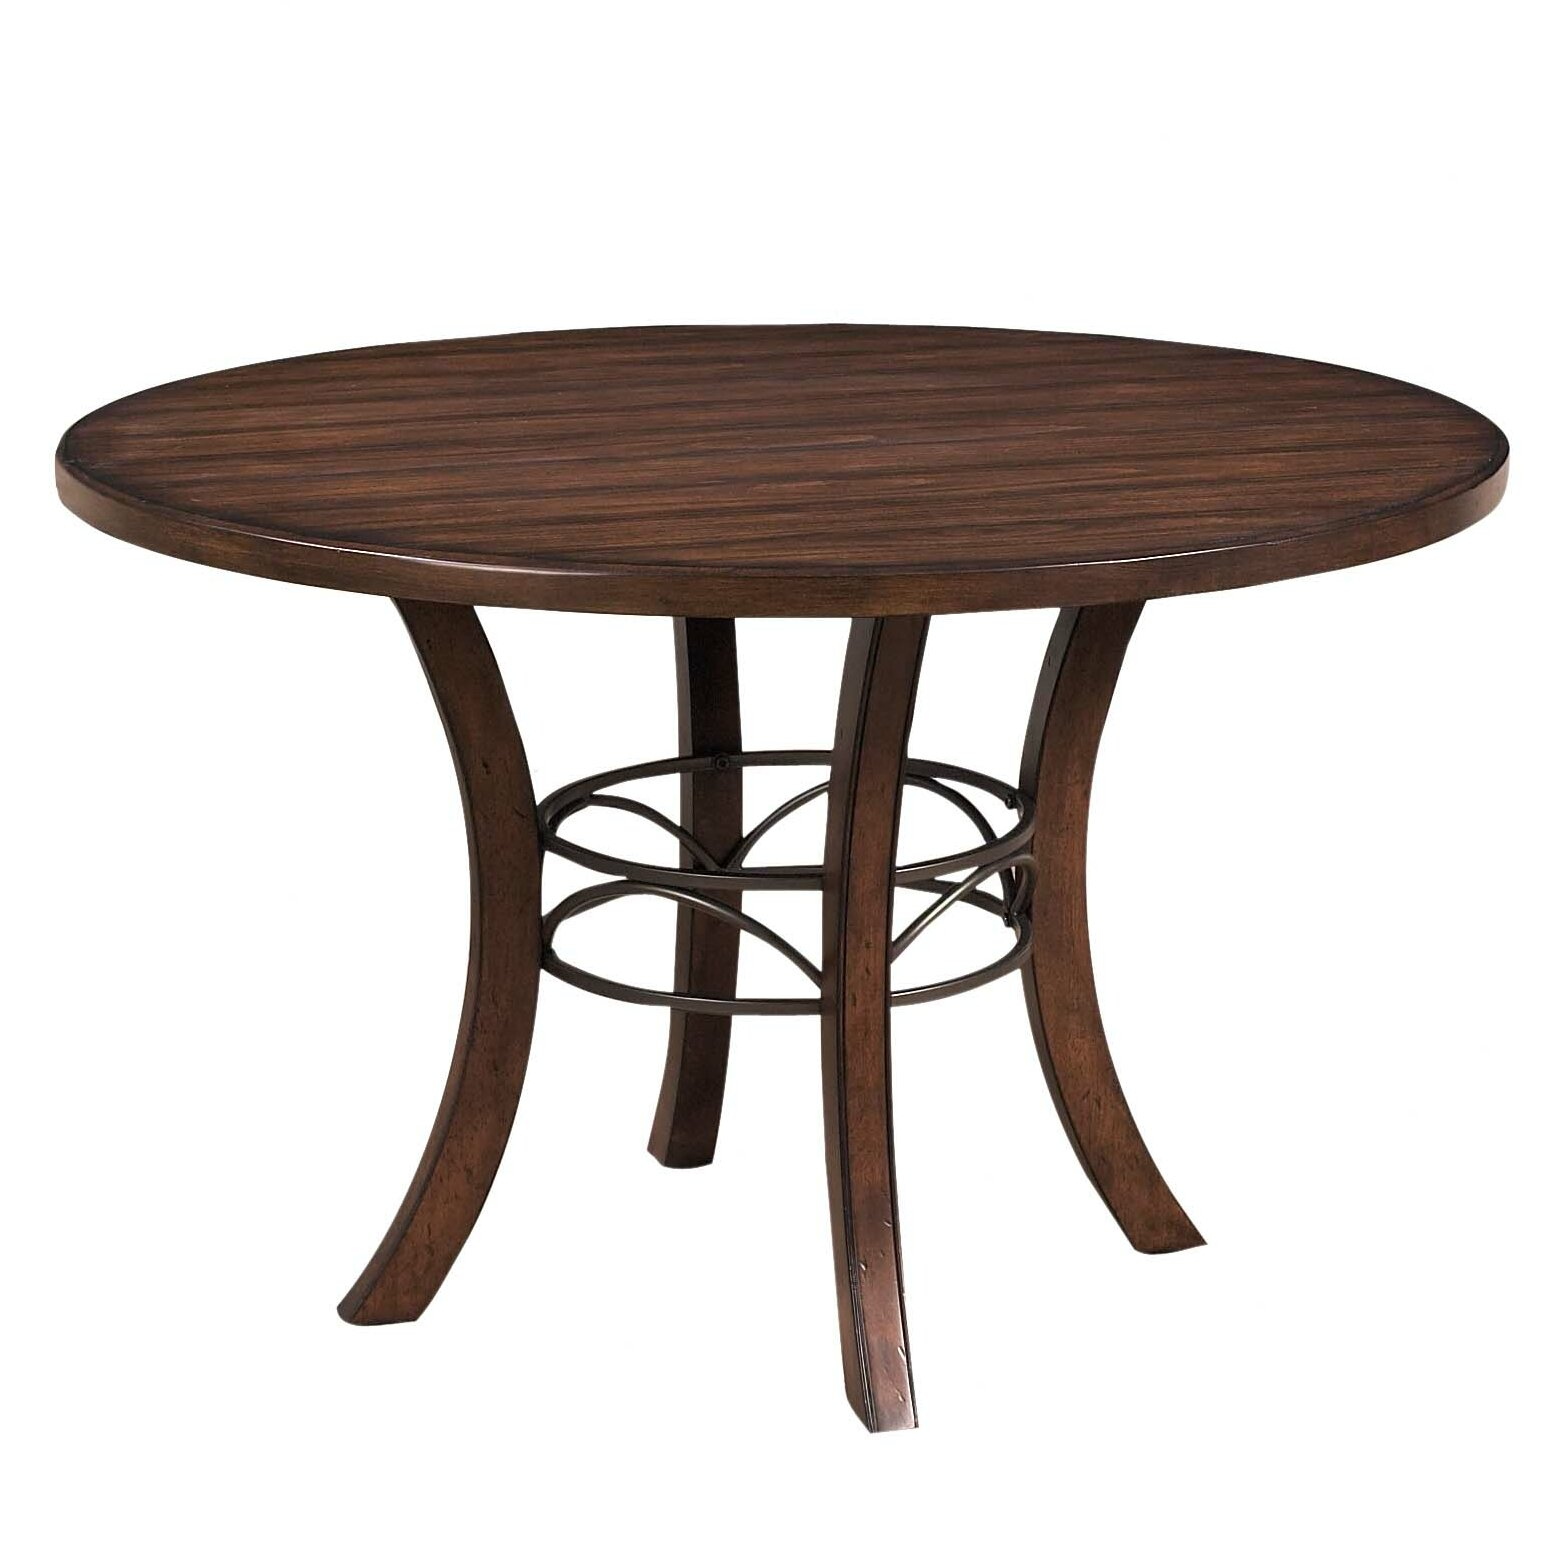 Hillsdale cameron round dining table reviews wayfair for Wayfair furniture dining tables